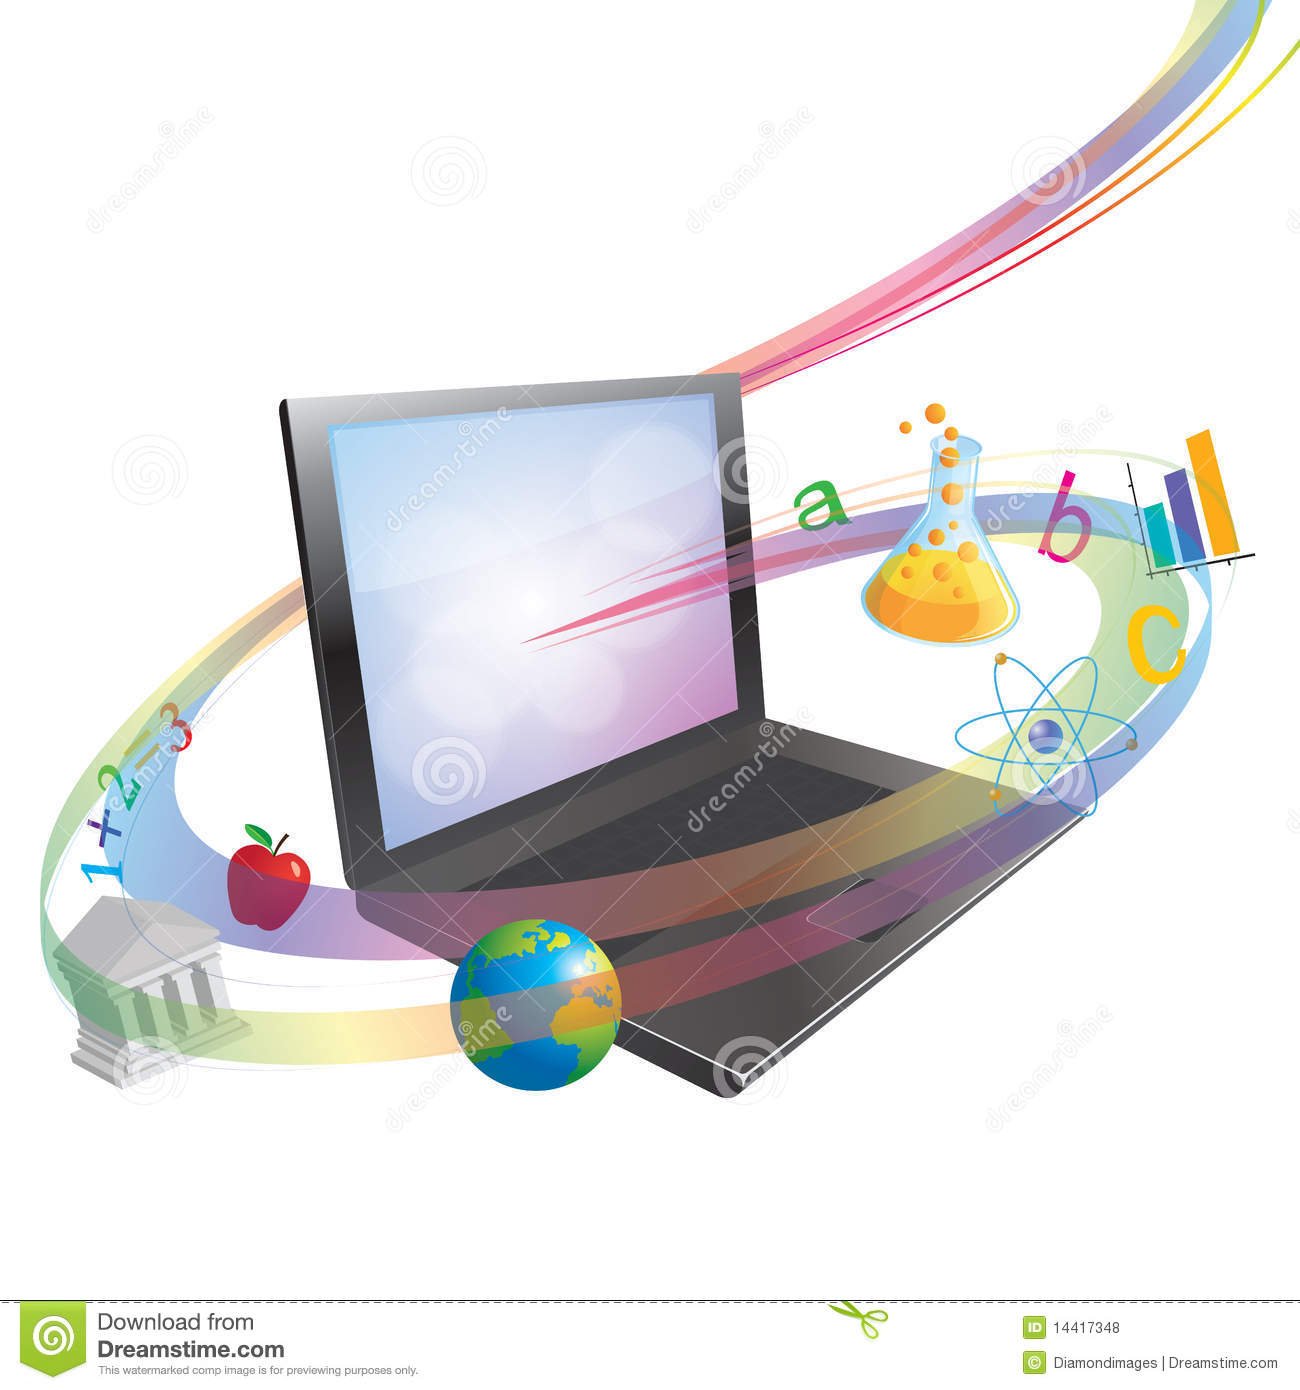 how to get a free laptop for online schooling